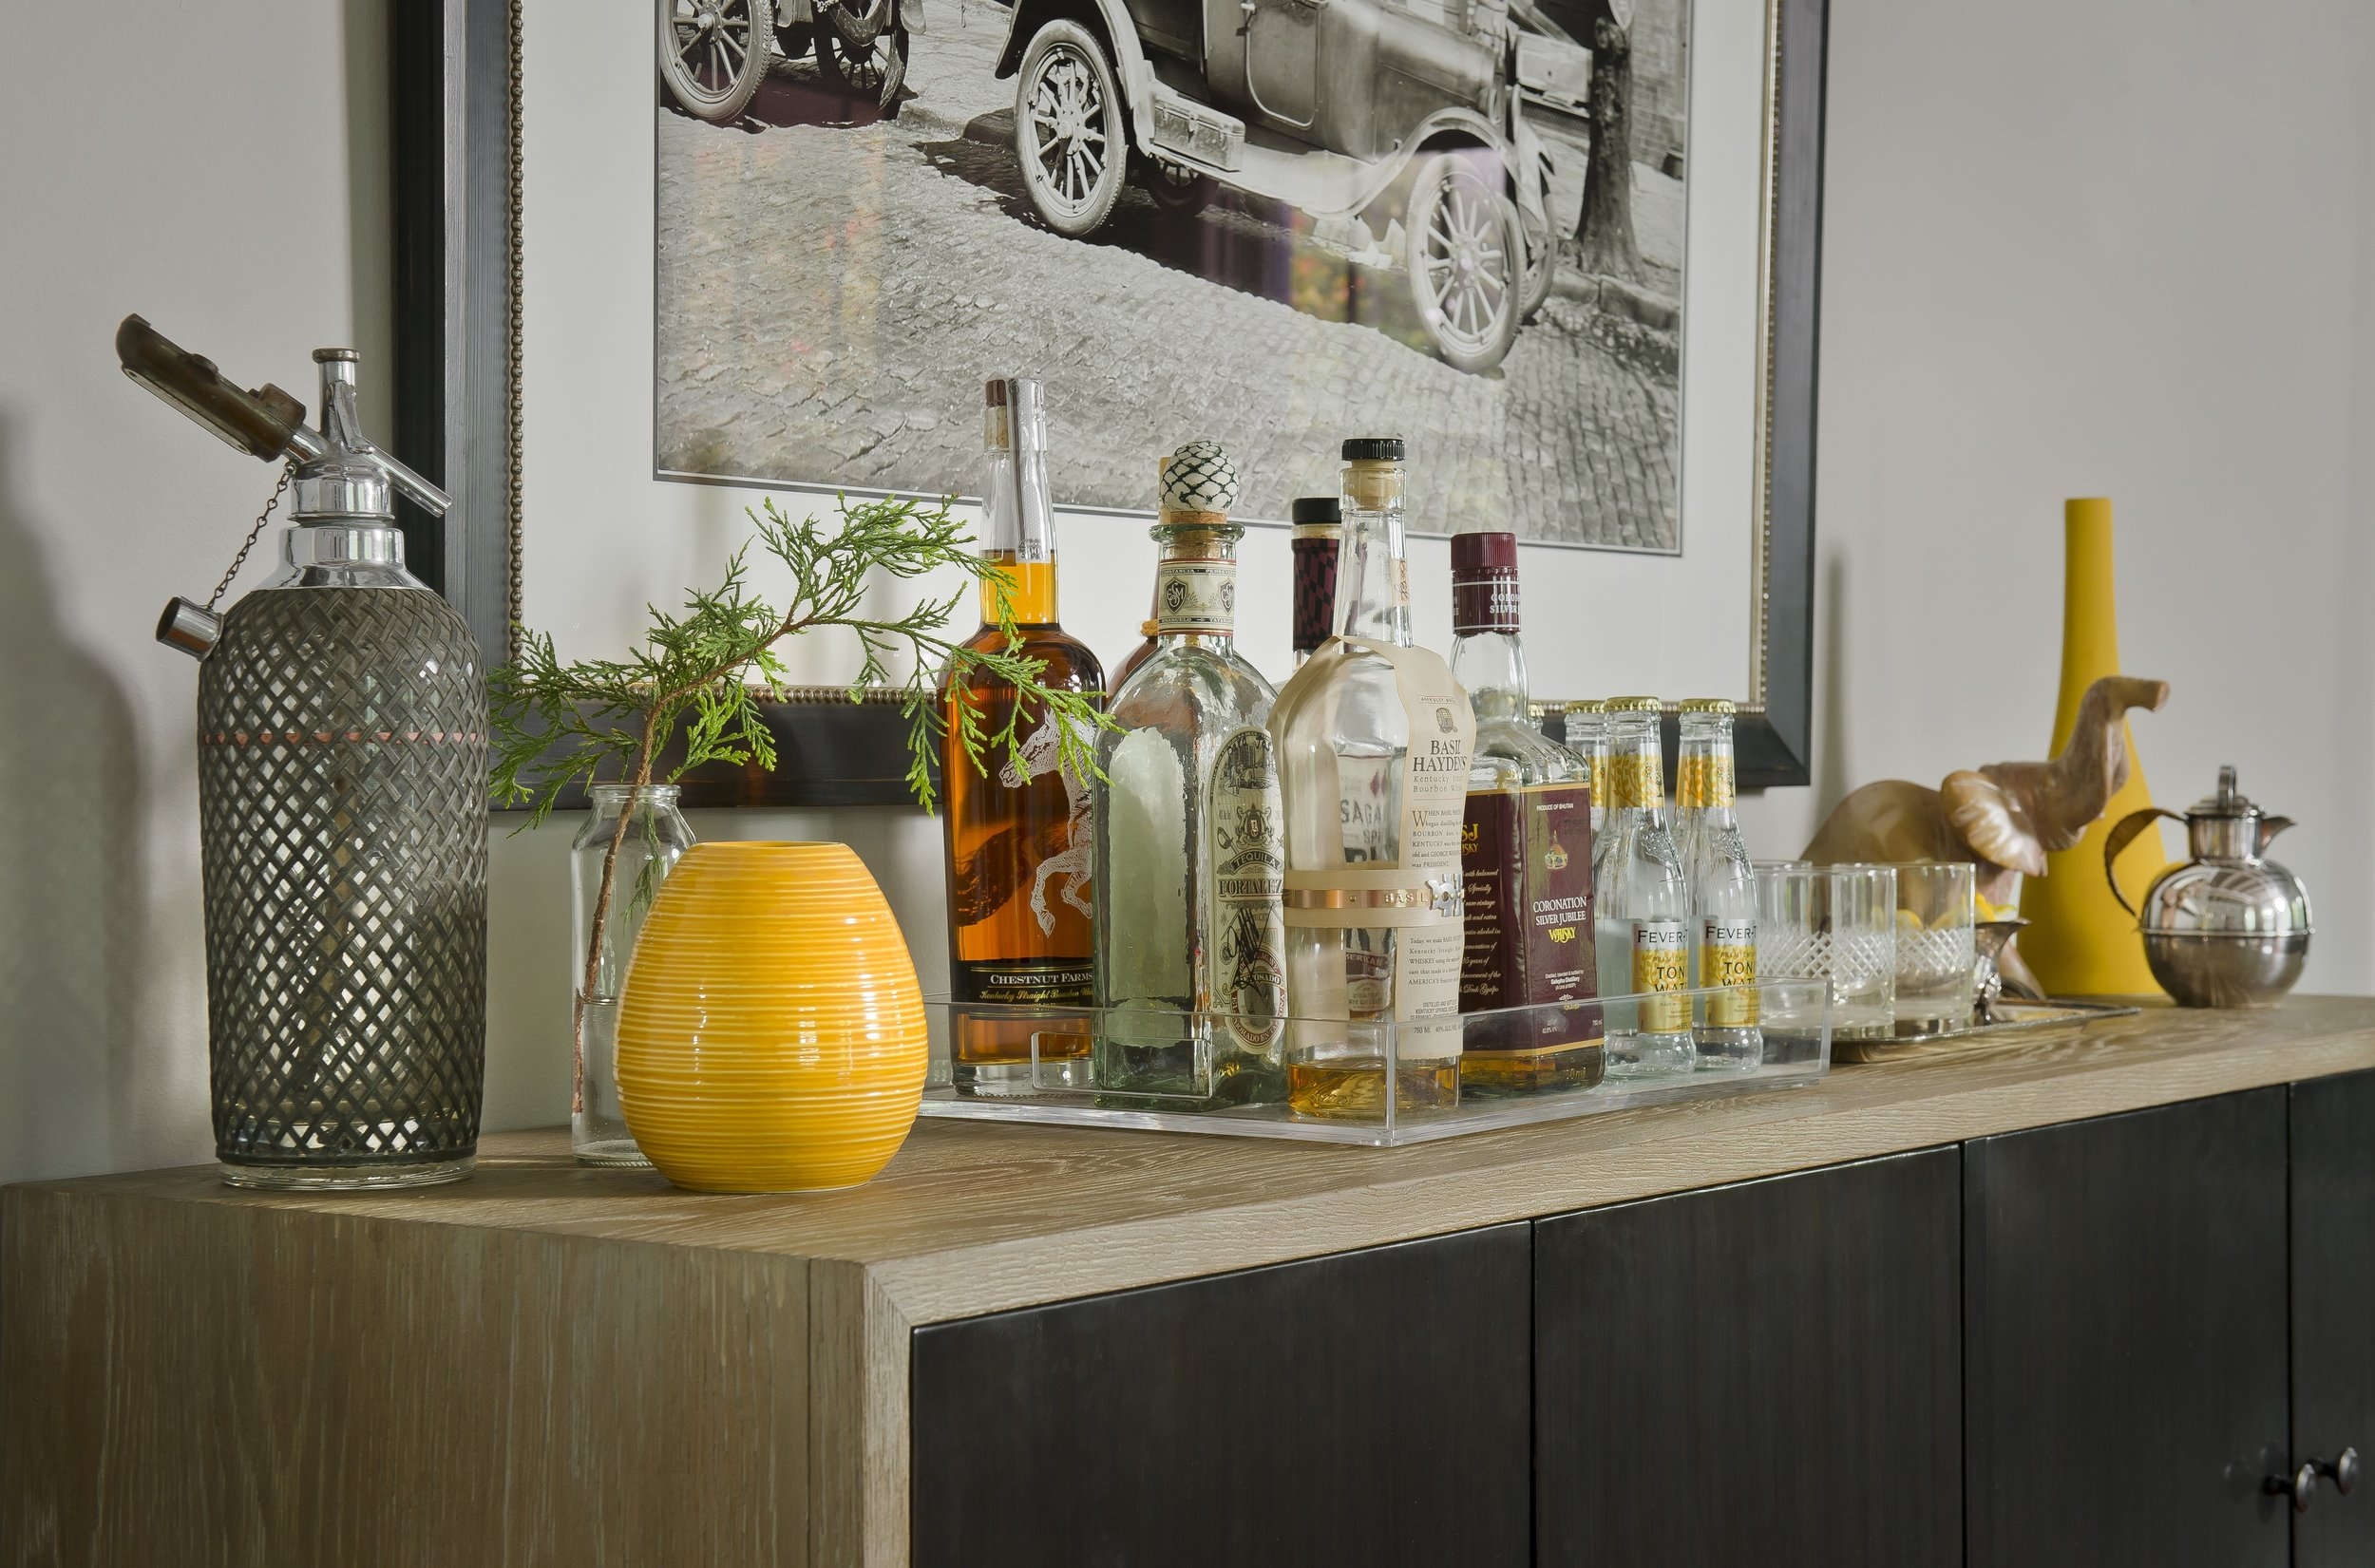 {This bar is set up on a buffet cabinet and is ready to serve drinks with a little bit of personality tossed in!  Overhill Road  design by April Force Pardoe Interiors.}